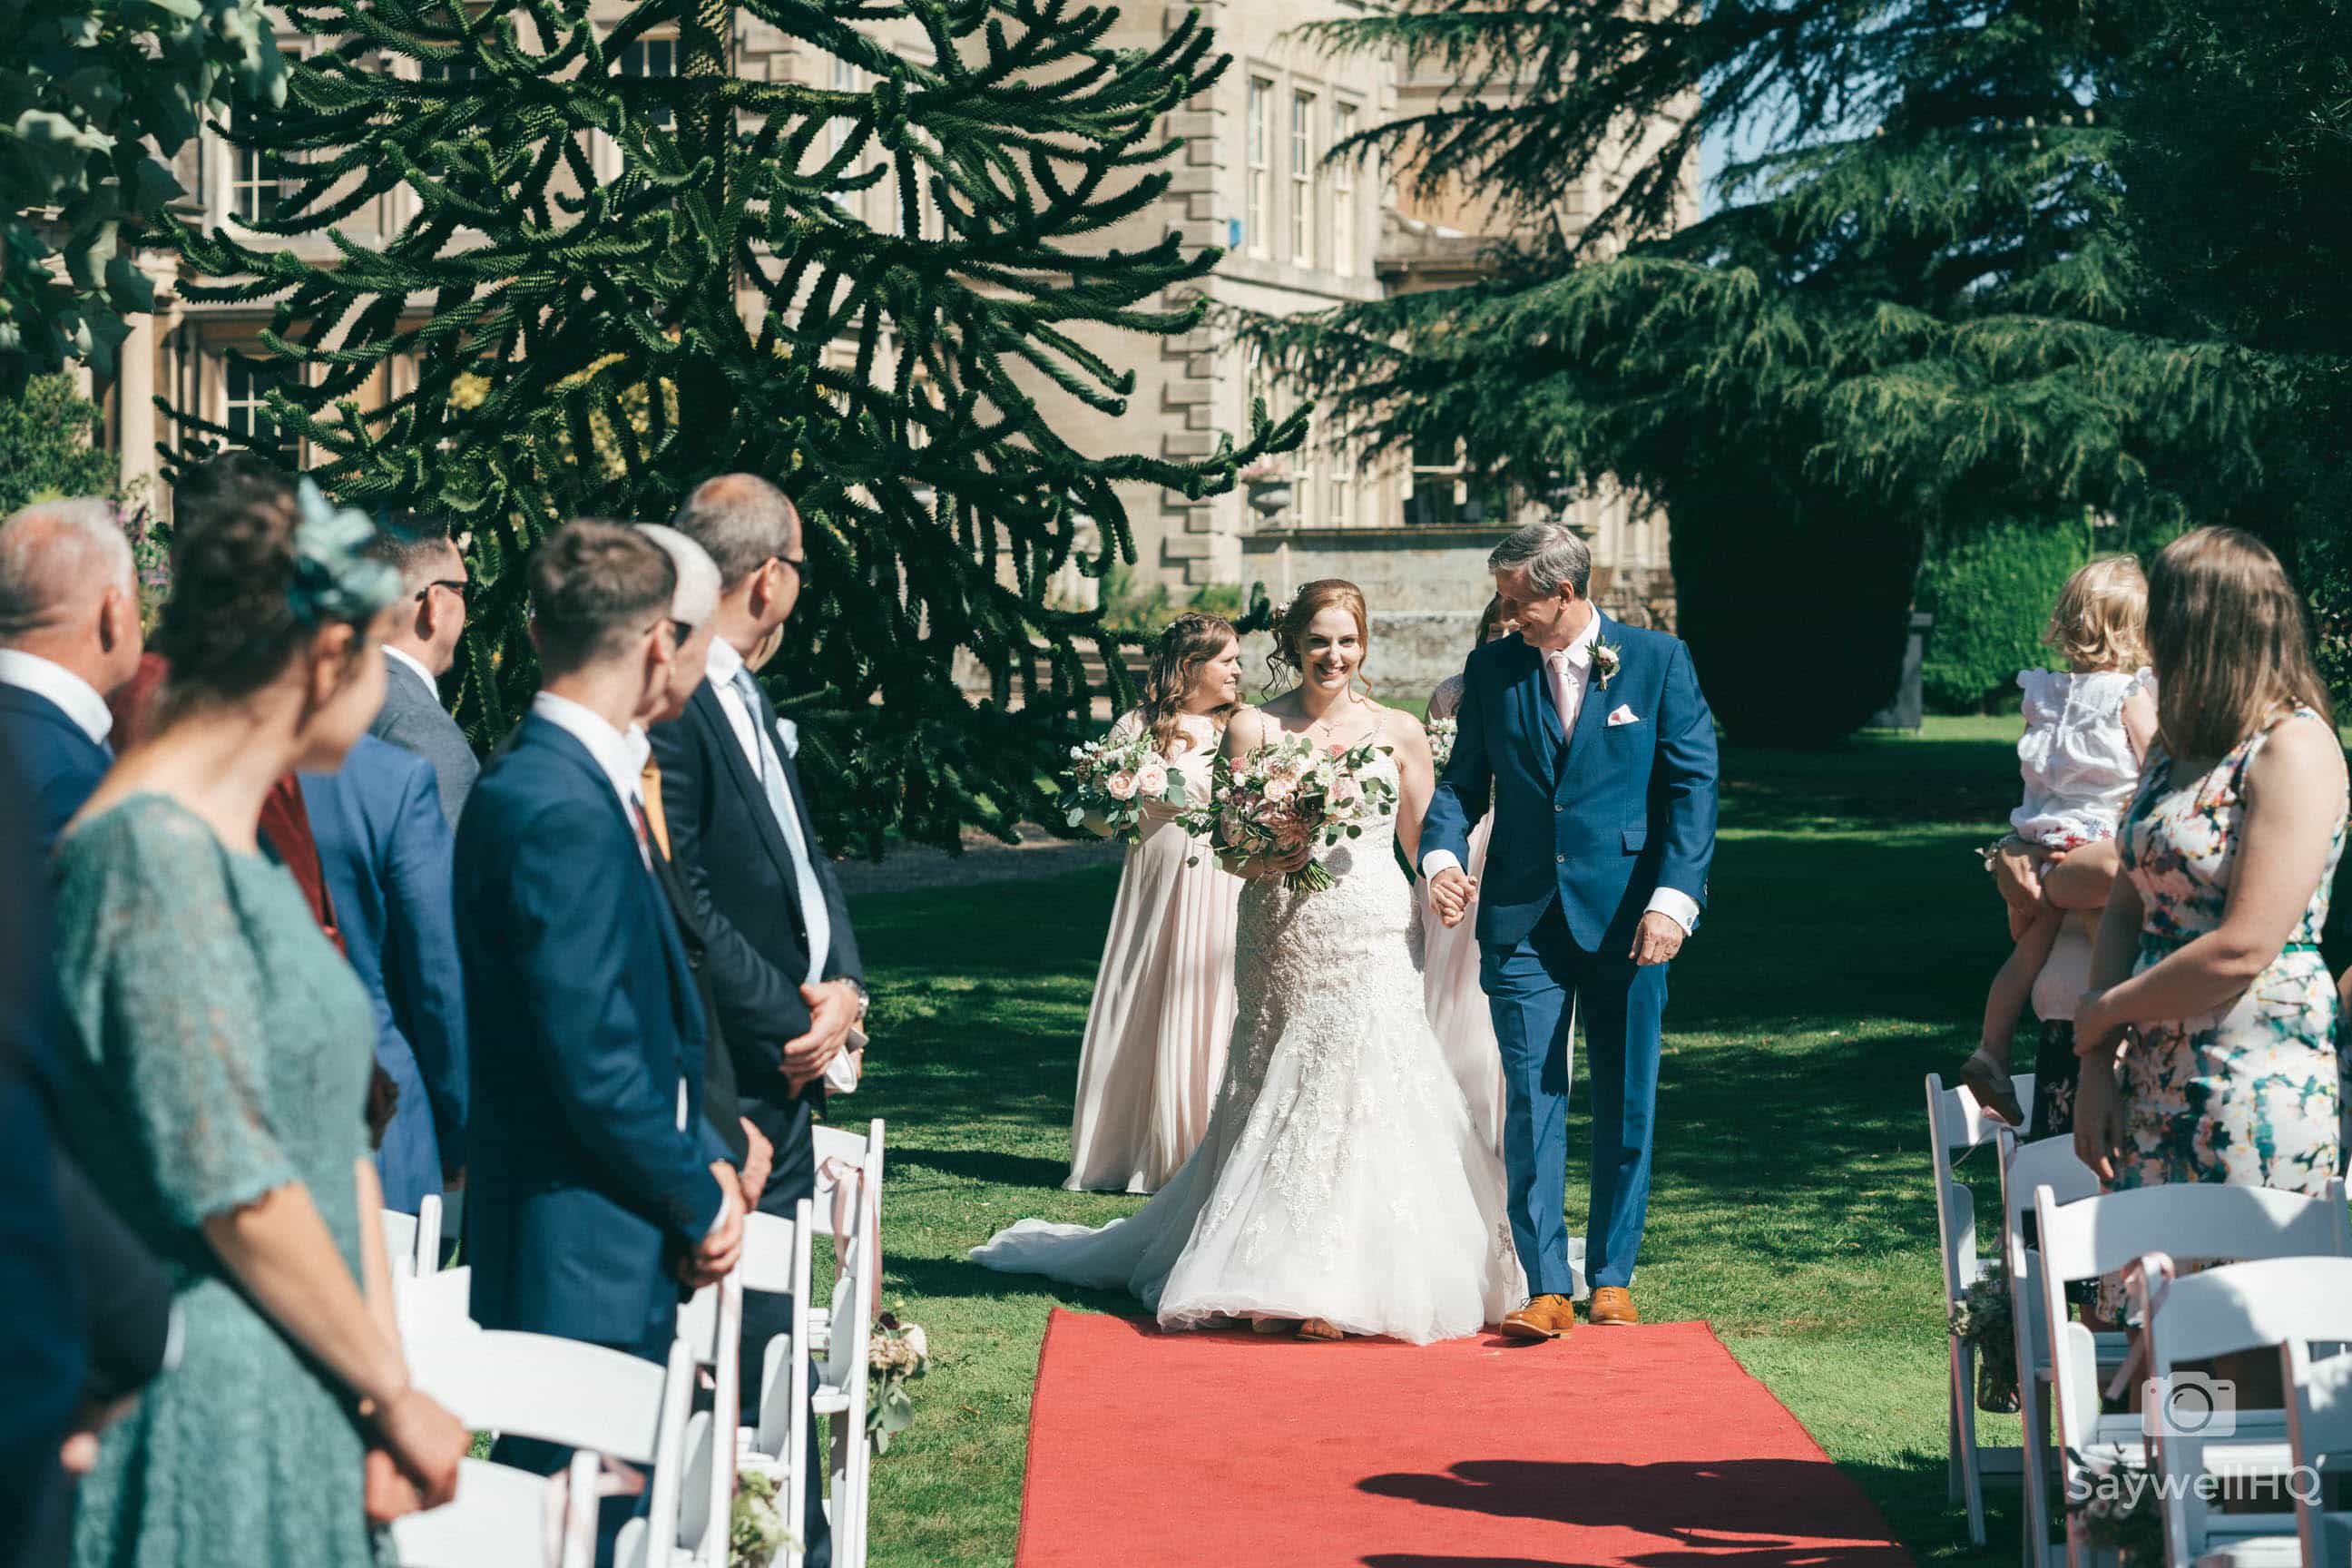 Wedding Photography at Prestwold Hall – bride and her dad walking down the aisle at prestwold hall wedding photography